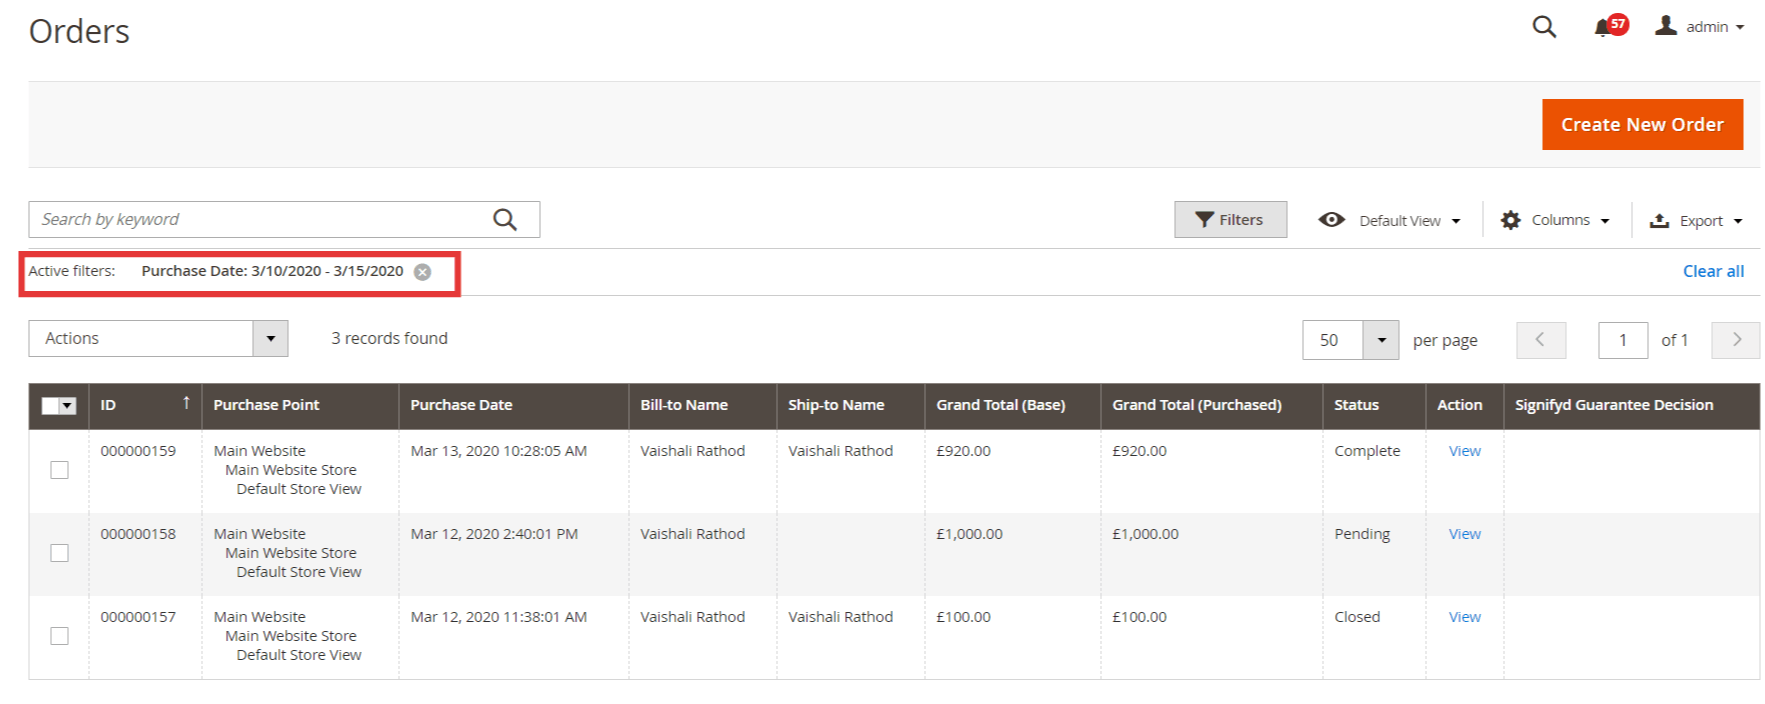 How to Filter Orders Between Two Dates in Magento 2 2